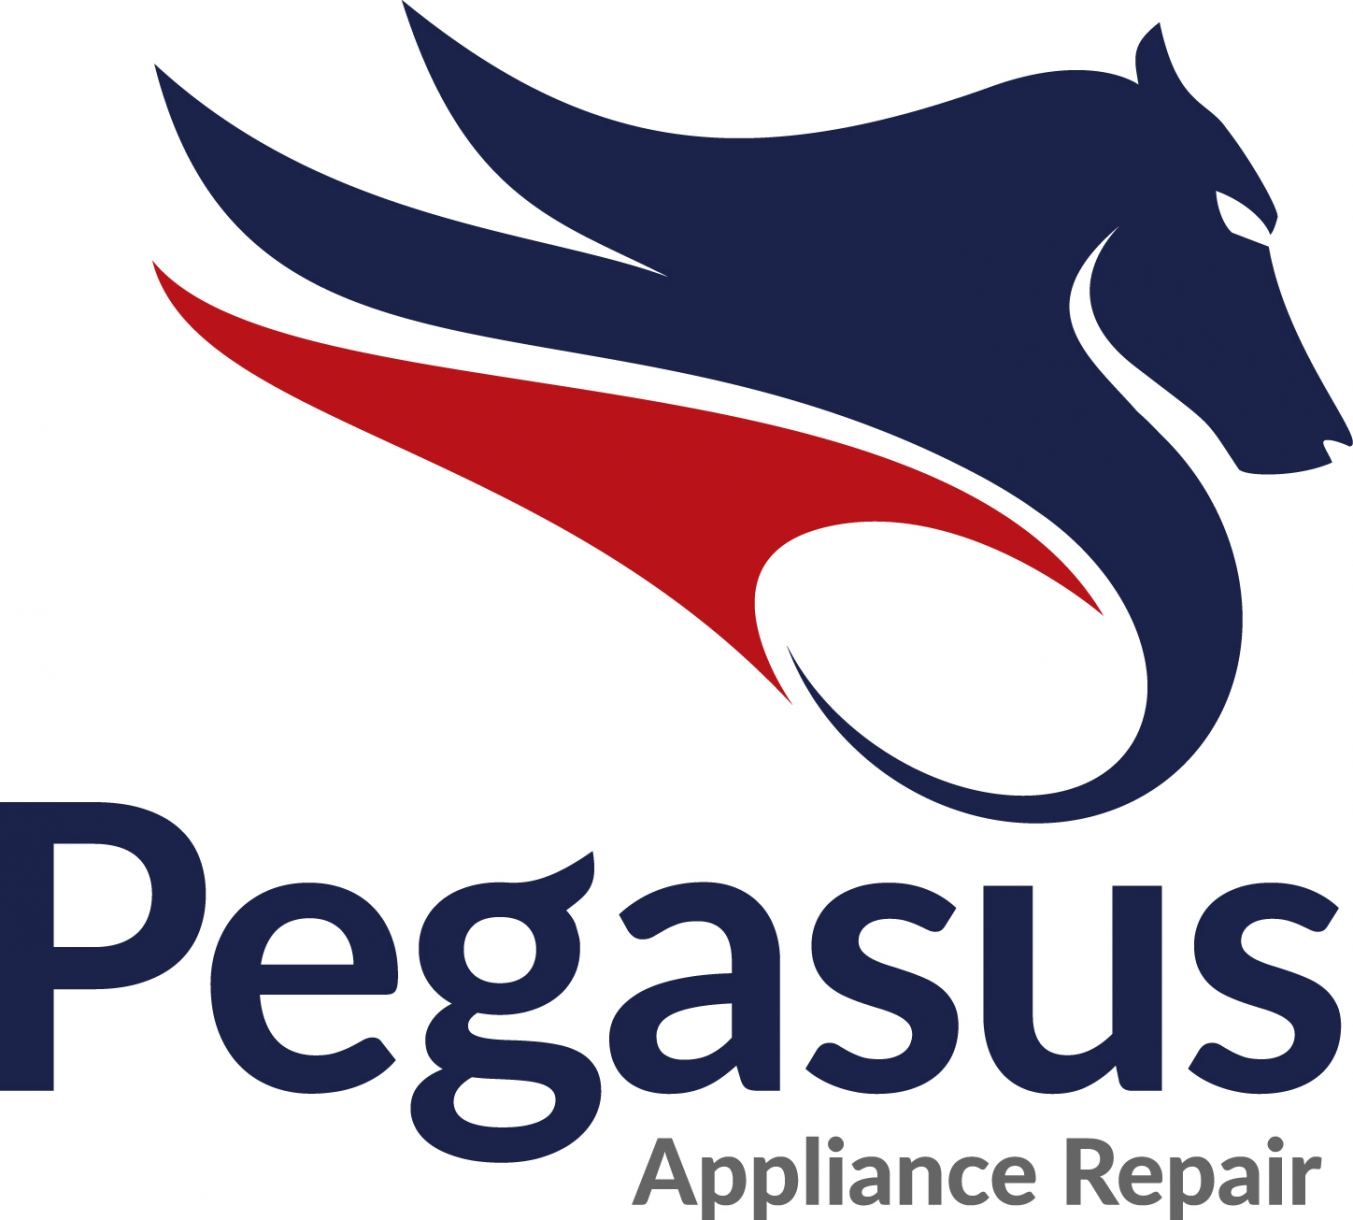 Pegasus Appliance Repair Logo